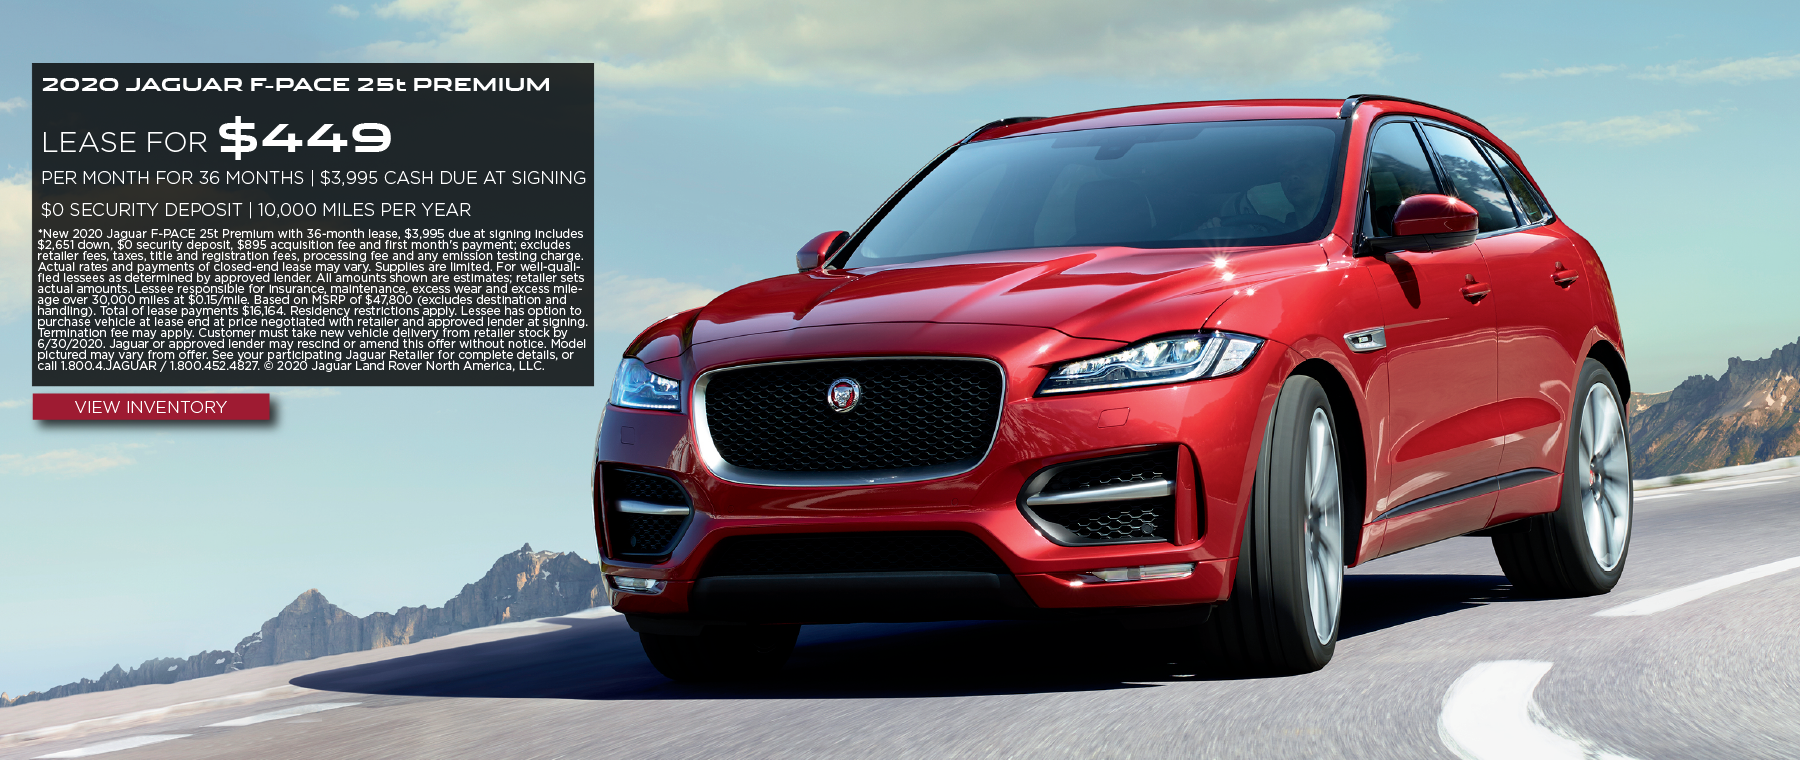 2020 JAGUAR F-PACE 25T PREMIUM. $449 PER MONTH. 36 MONTH LEASE TERM. $3,995 CASH DUE AT SIGNING. $0 SECURITY DEPOSIT. 10,000 MILES PER YEAR. EXCLUDES RETAILER FEES, TAXES, TITLE AND REGISTRATION FEES, PROCESSING FEE AND ANY EMISSION TESTING CHARGE. OFFER ENDS 6/30/2020. VIEW INVENTORY. RED JAGUAR F-PACE DRIVING DOWN ROAD IN MOUNTAINS.